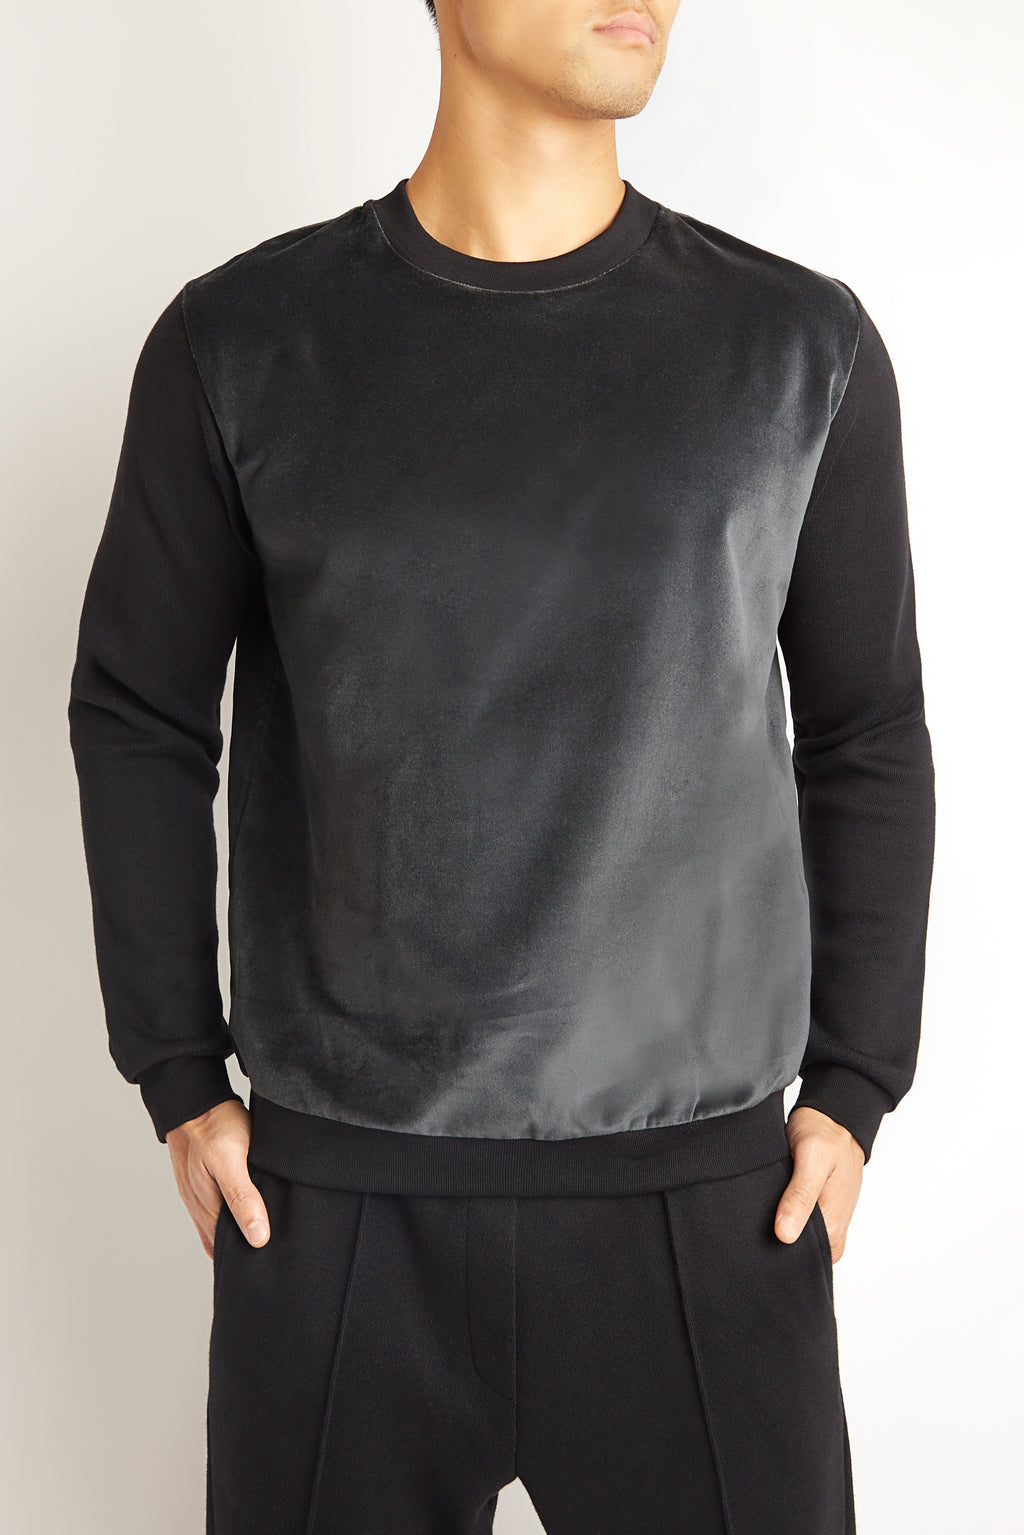 BLACK COTTON CASHMERE SWEATER